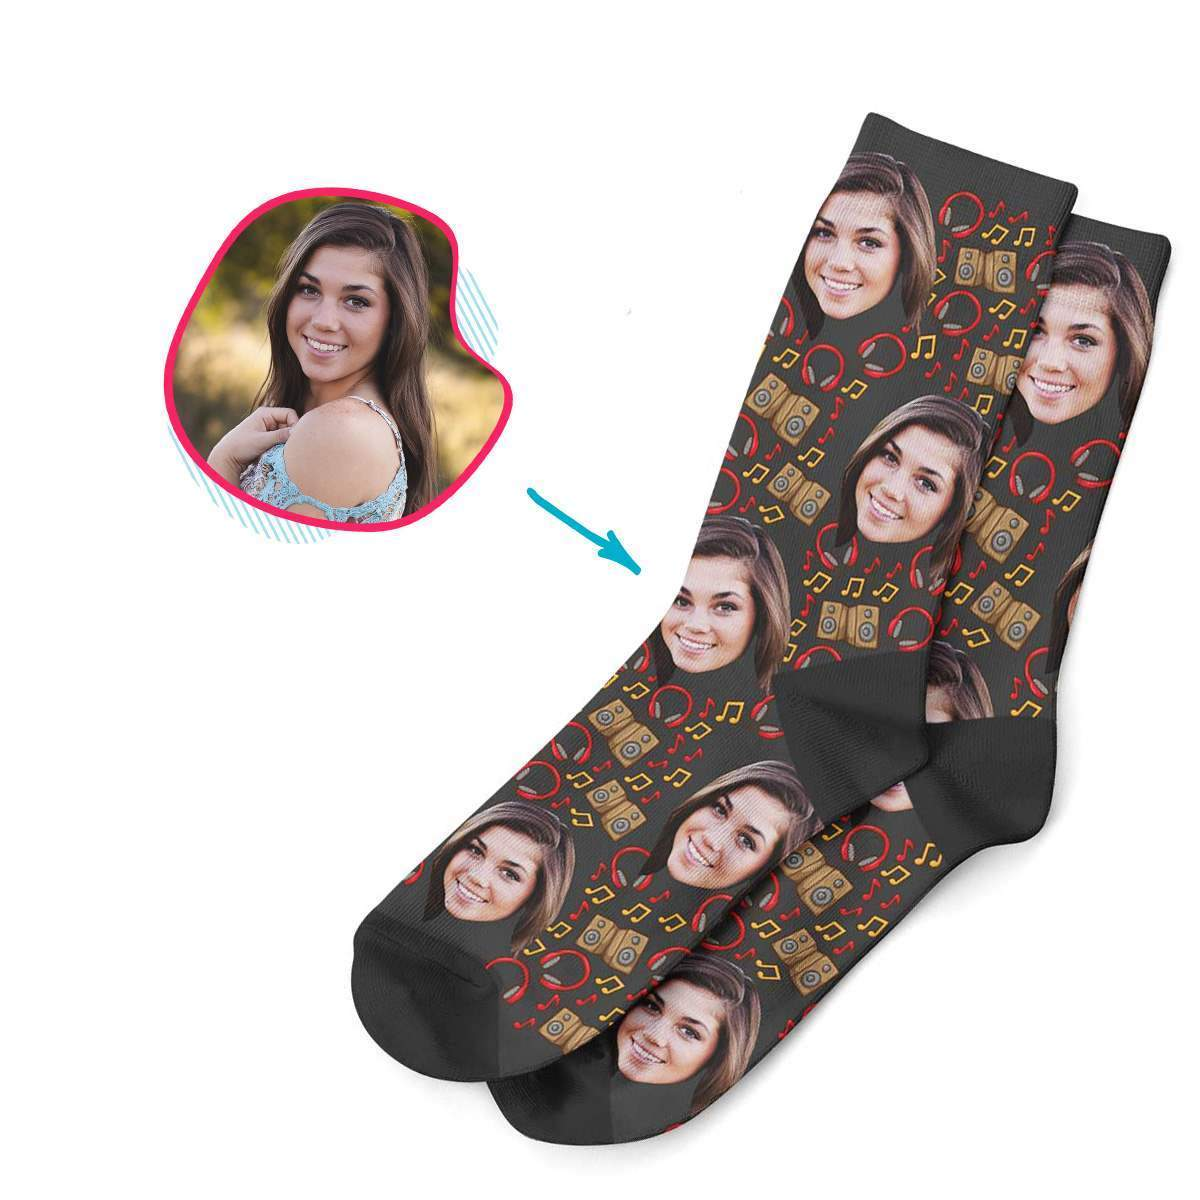 dark Music socks personalized with photo of face printed on them